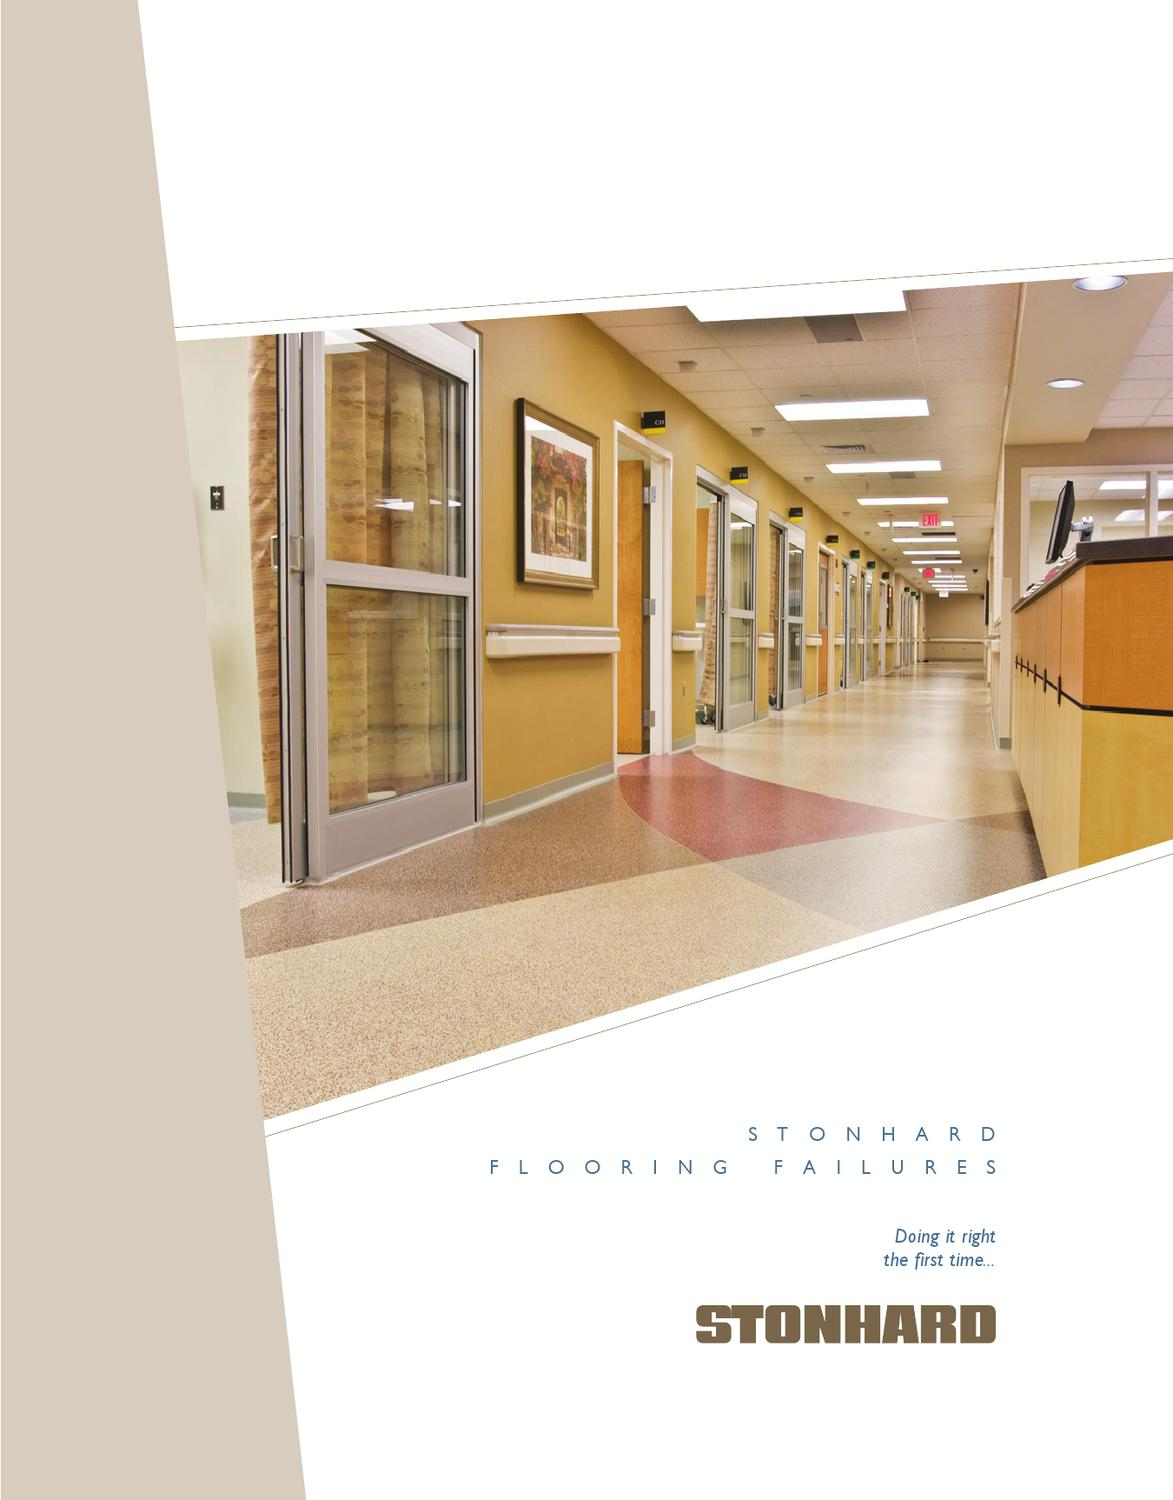 Stonhard Flooring Failures Brochure By Jennifer Gandy   Issuu